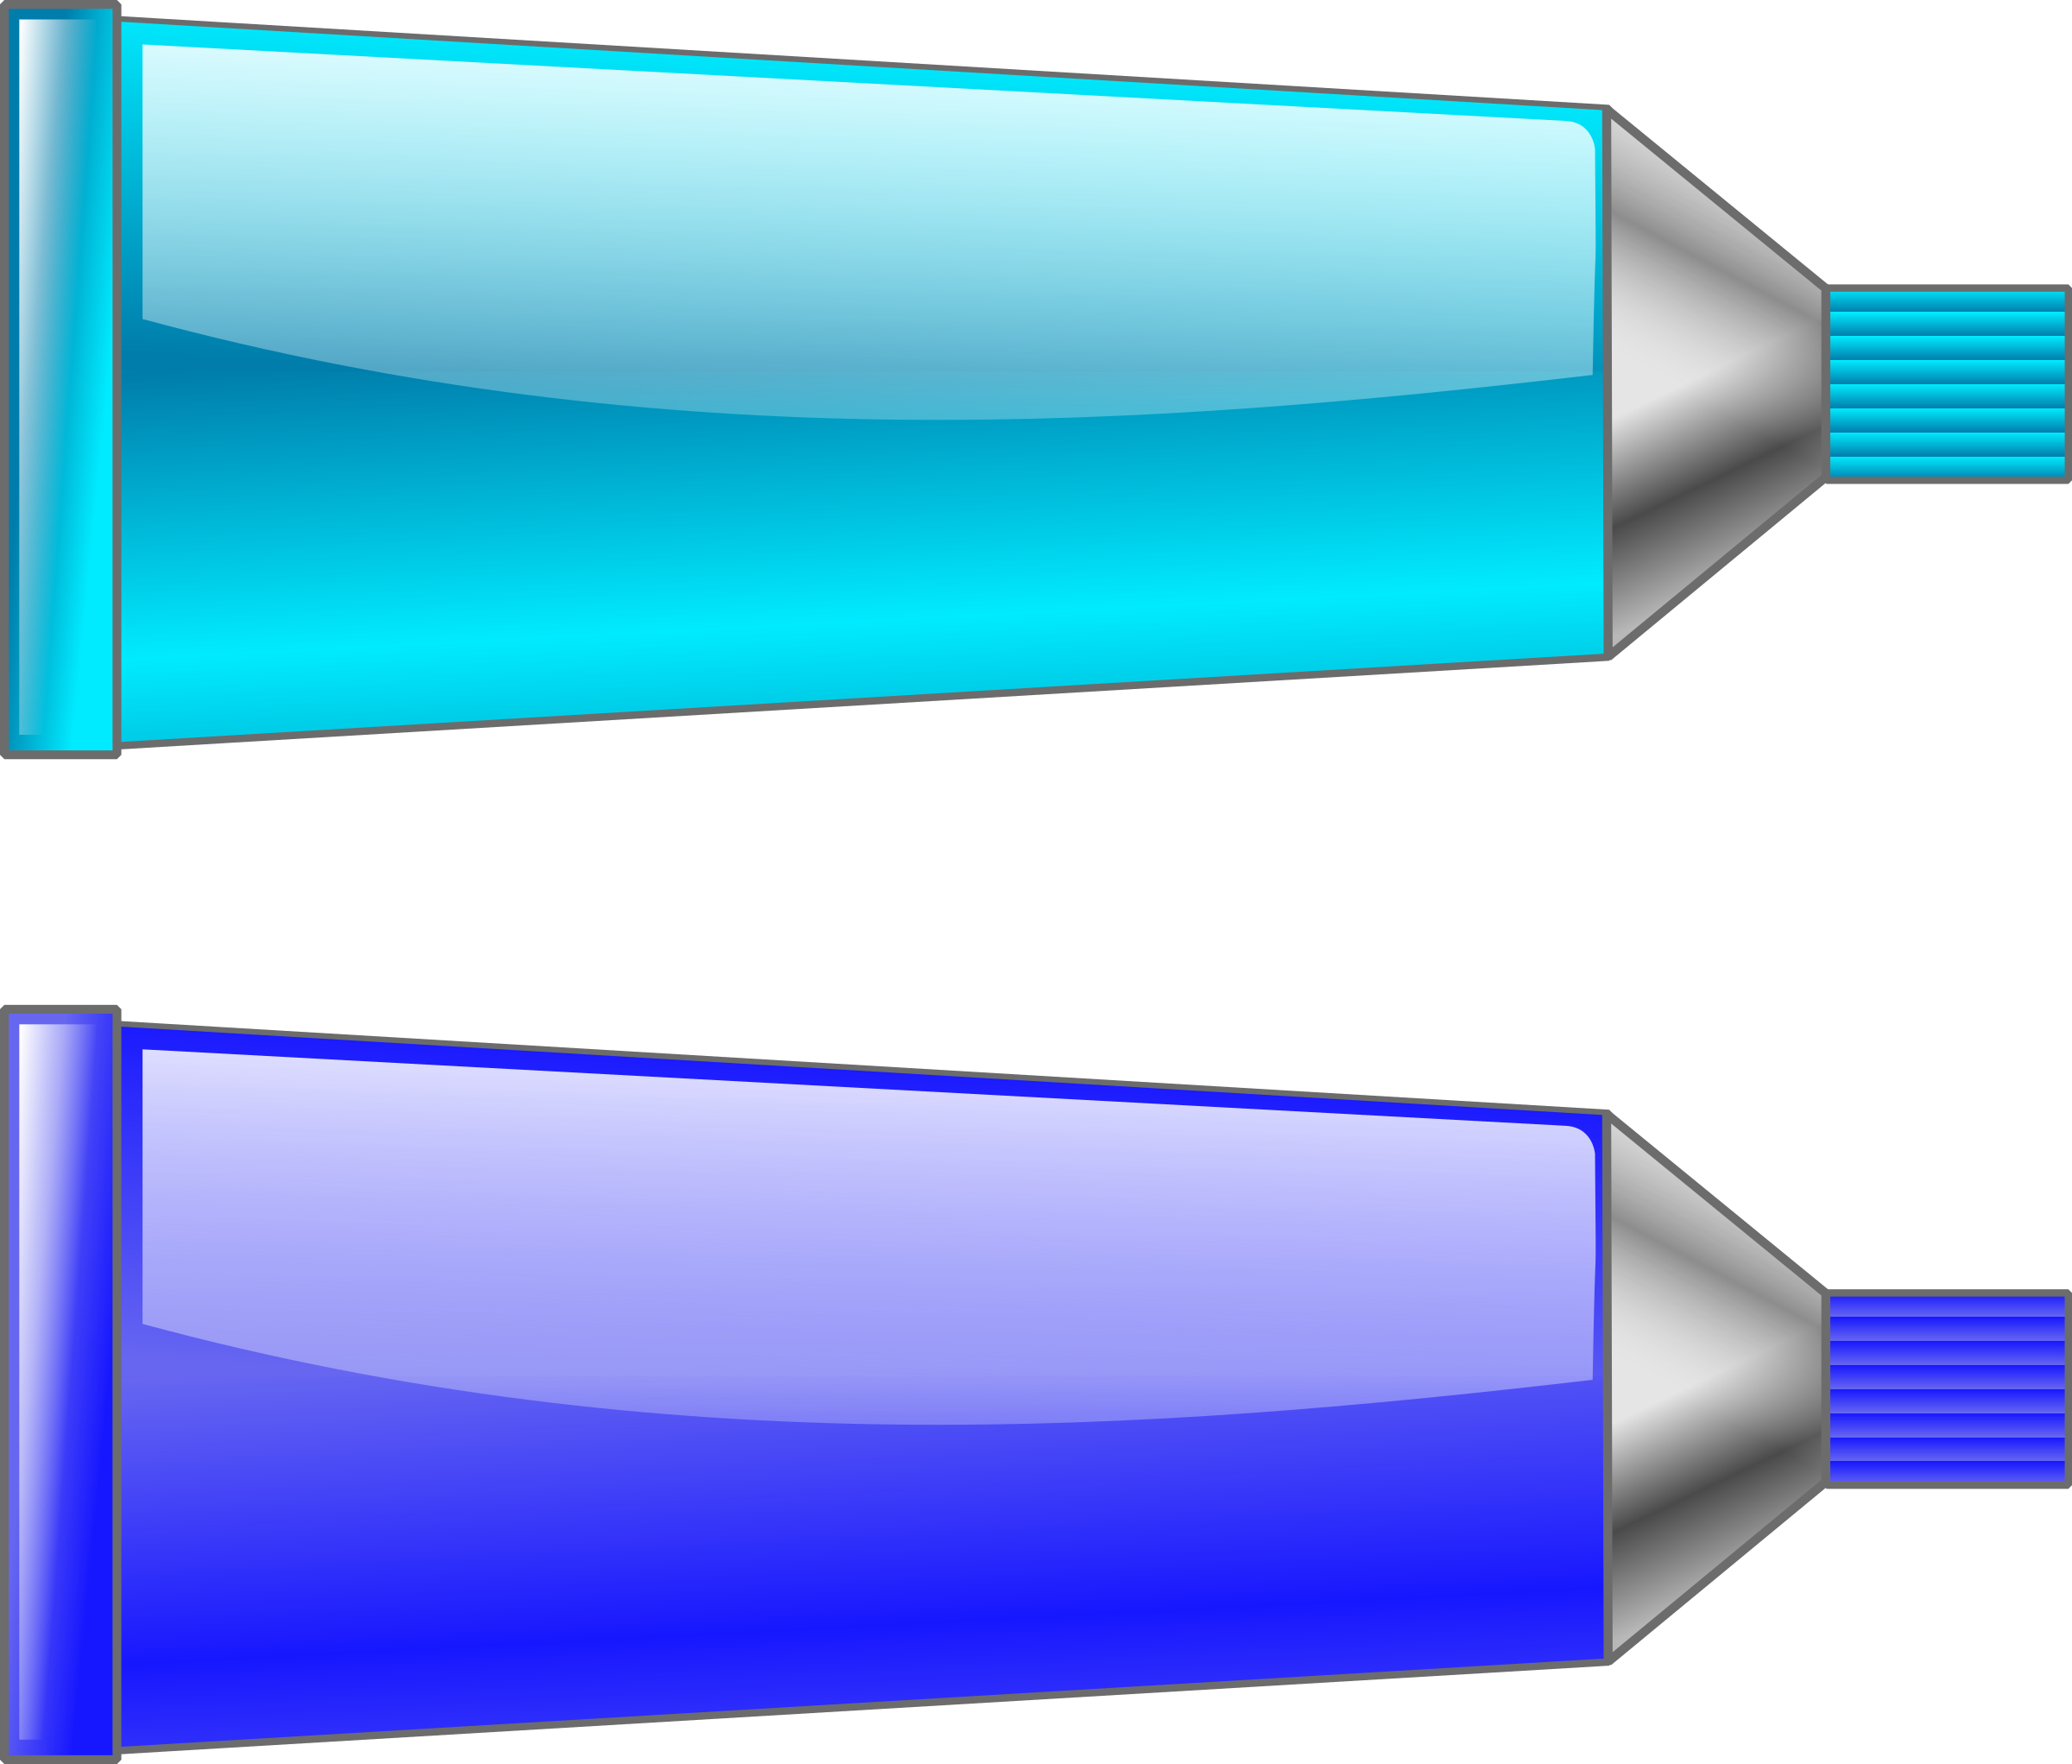 Blue color tube clipart.